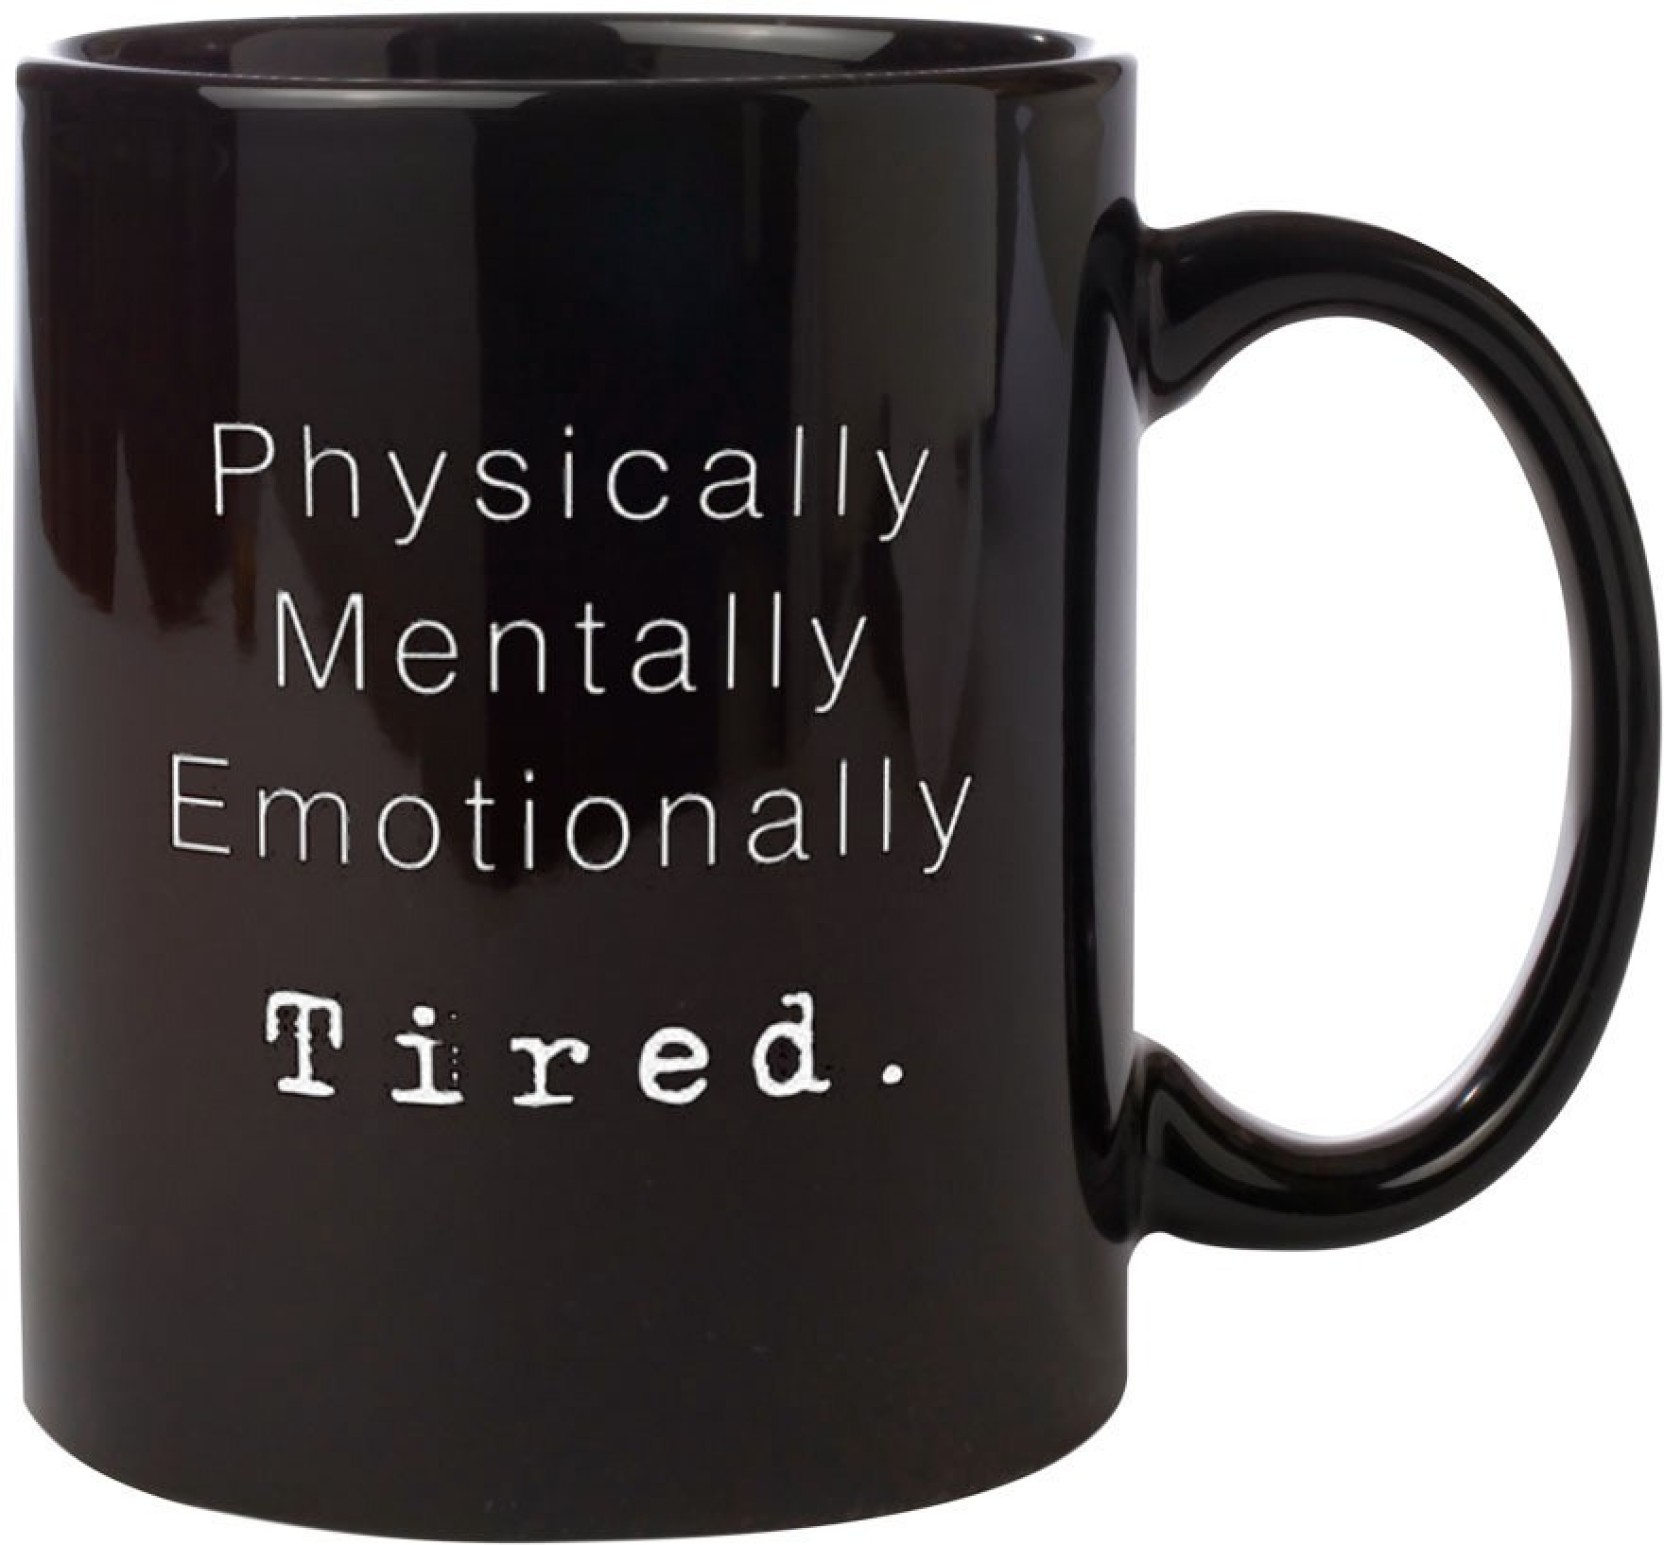 Noozarts BLACK ELEGANT MUG WITH QUOTES - PHYSICALLY MENTALLY ...